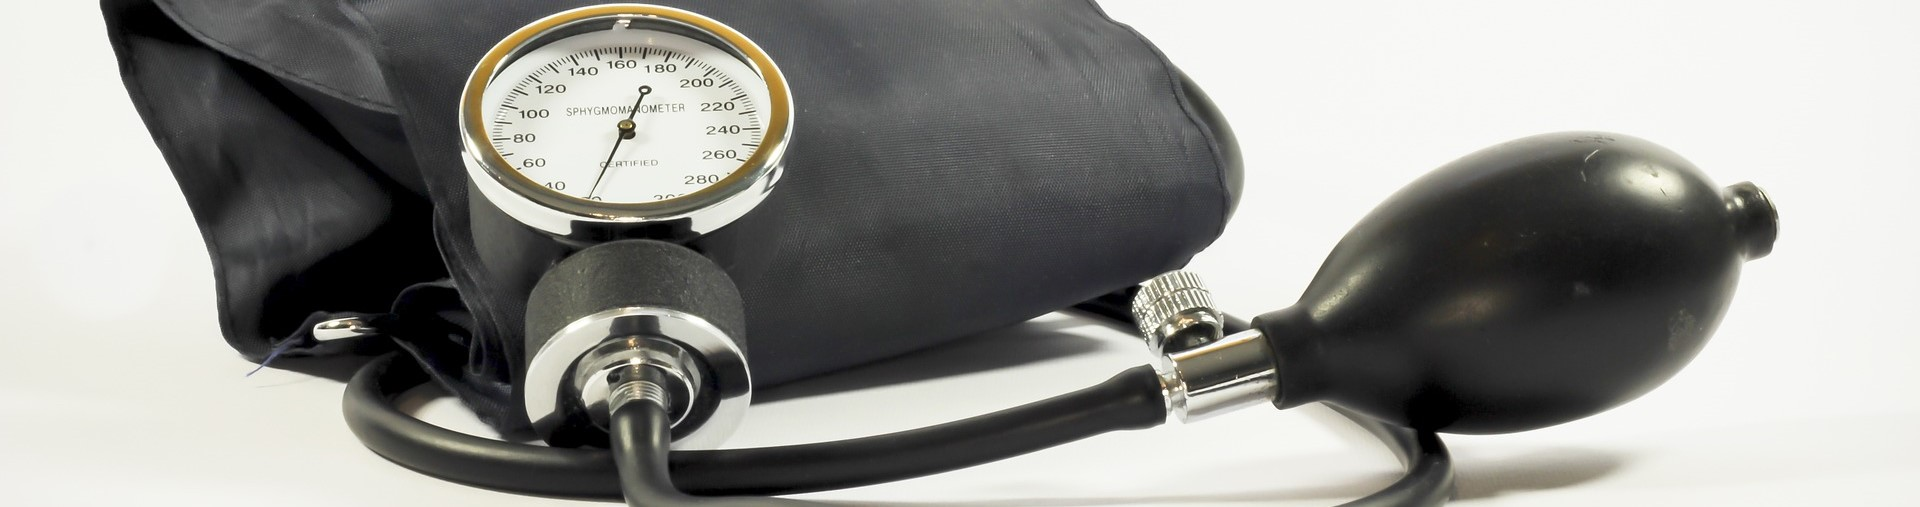 Sphygmomanometer, the device used to measure blood pressure - CarDonations4Cancer.org